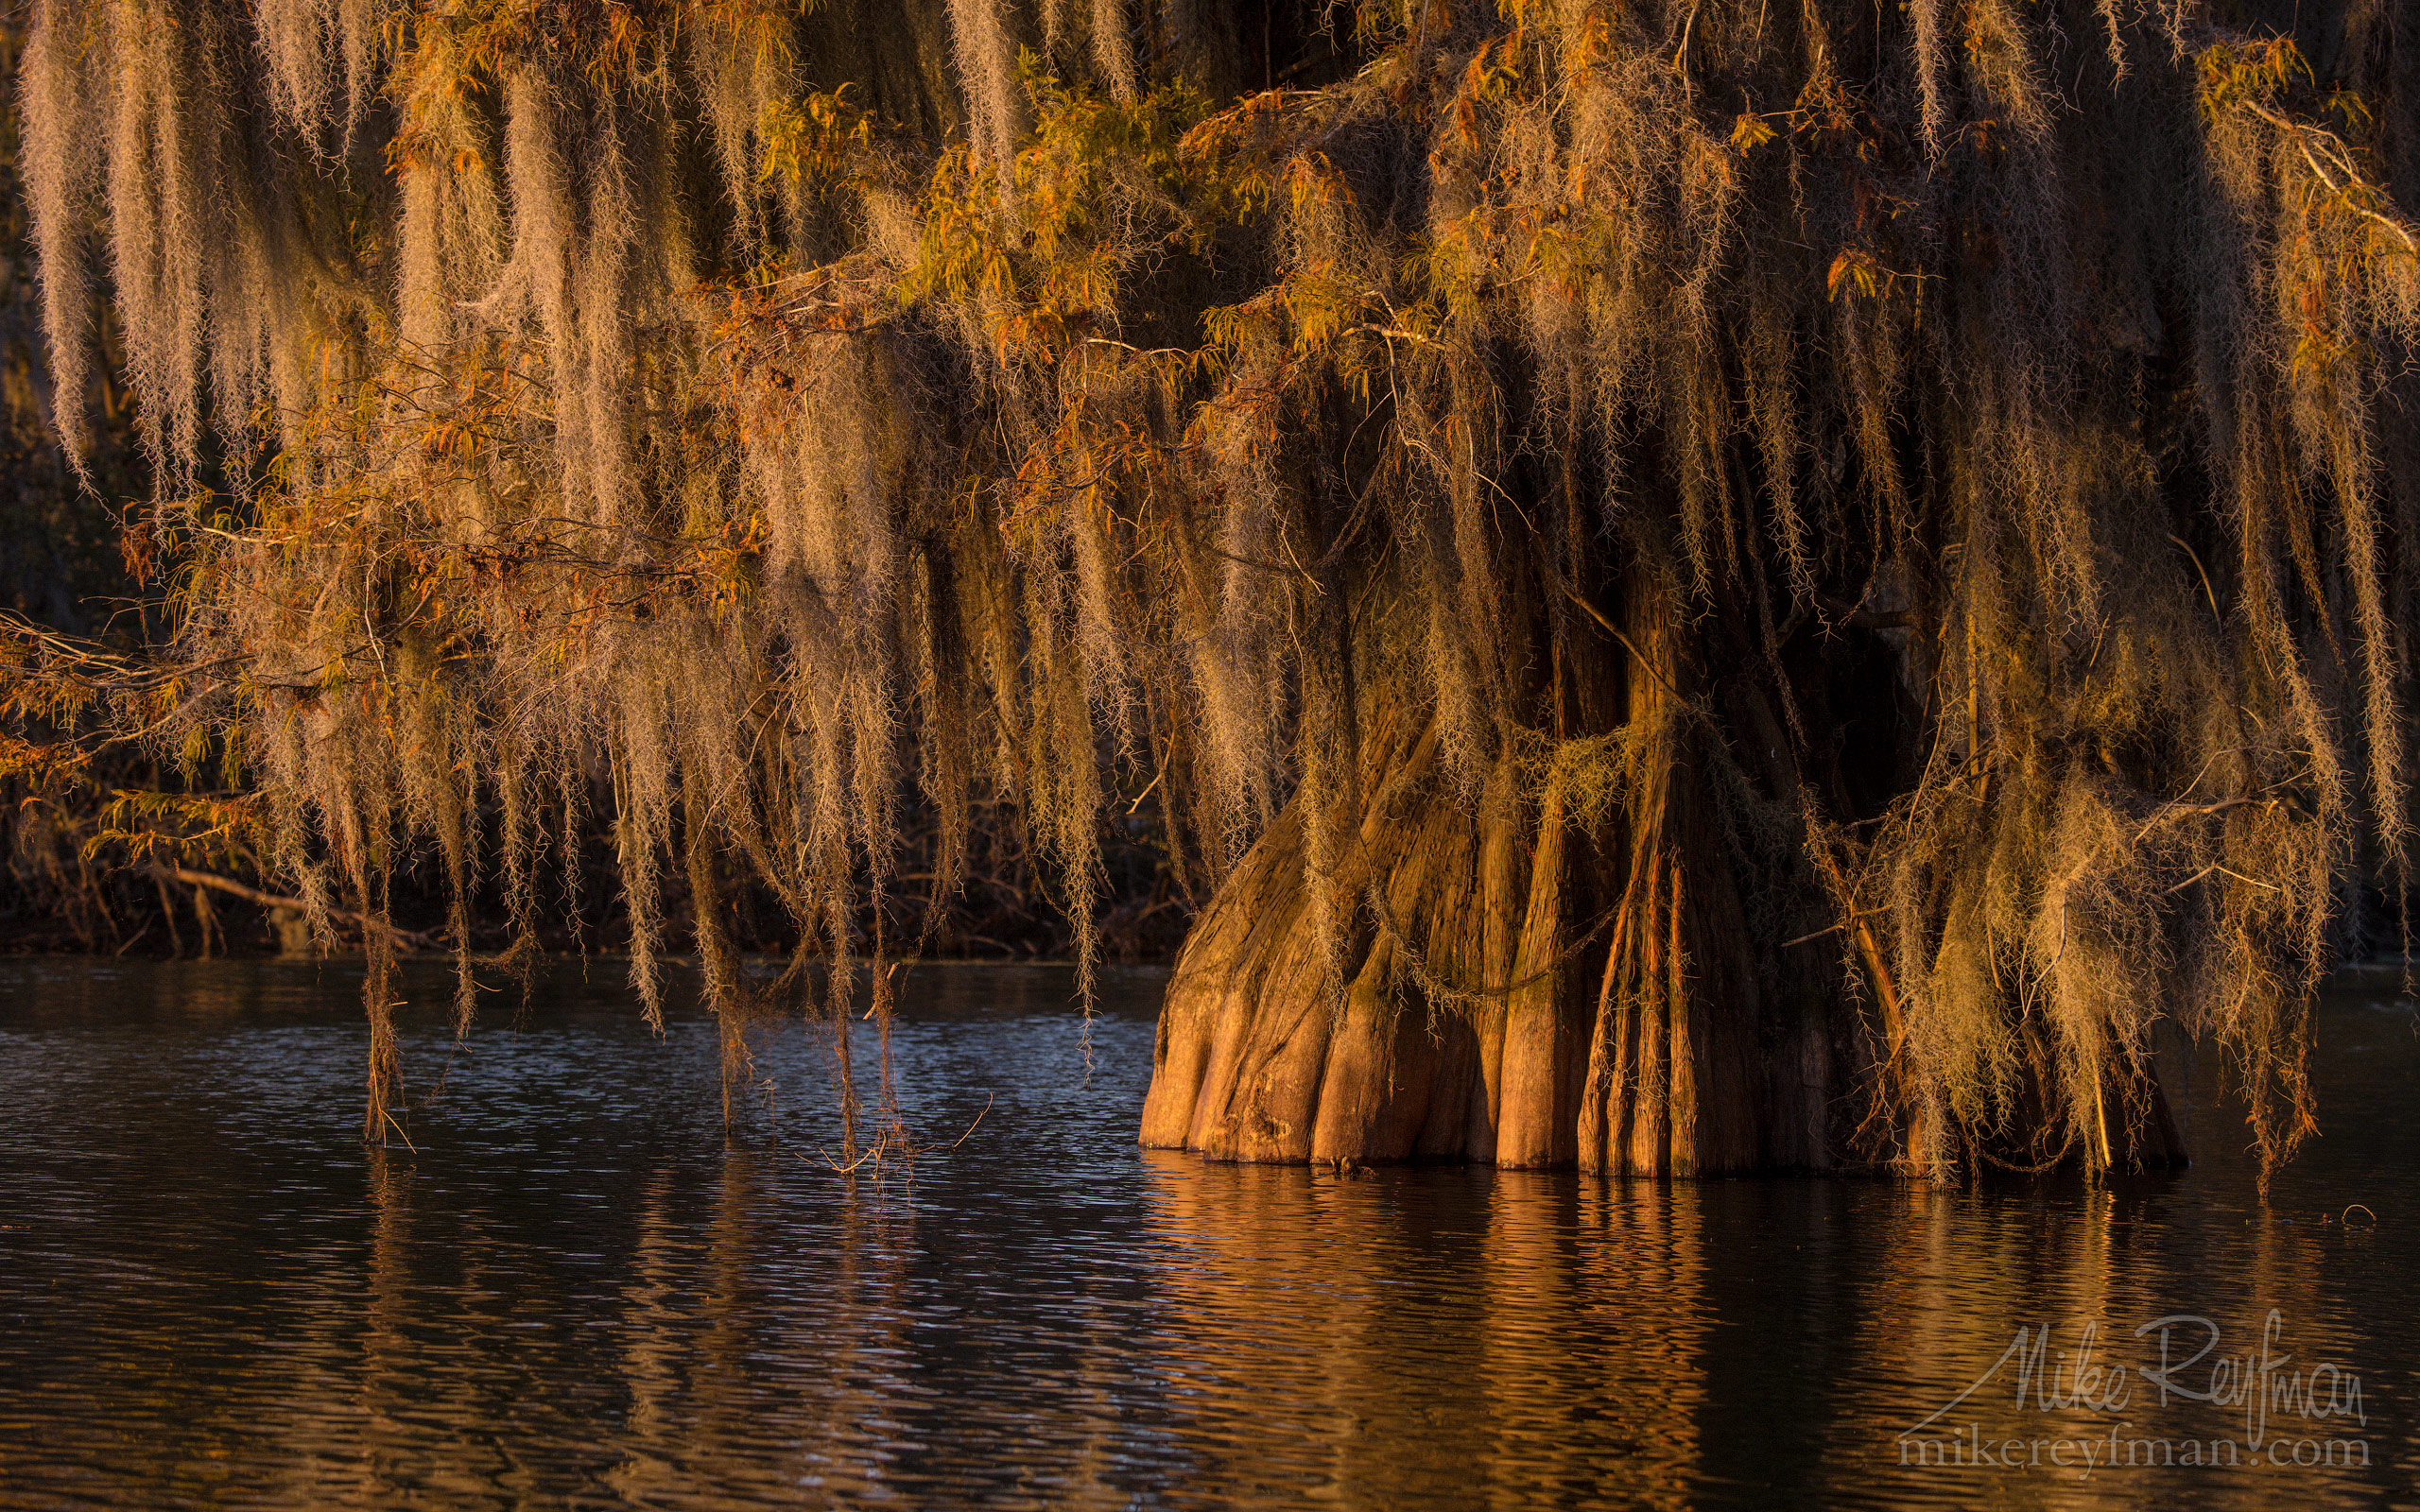 Spanish Moss on the Bald Cypress trees. Lake Martin, Louisiana, US 024-LT1-50A4140.jpg - Bold Cypress and Tupelo Trees in the swamps of Atchafalaya River Basin. Caddo, Martin and Fousse Lakes. Texas/Louisiana, USA. - Mike Reyfman Photography